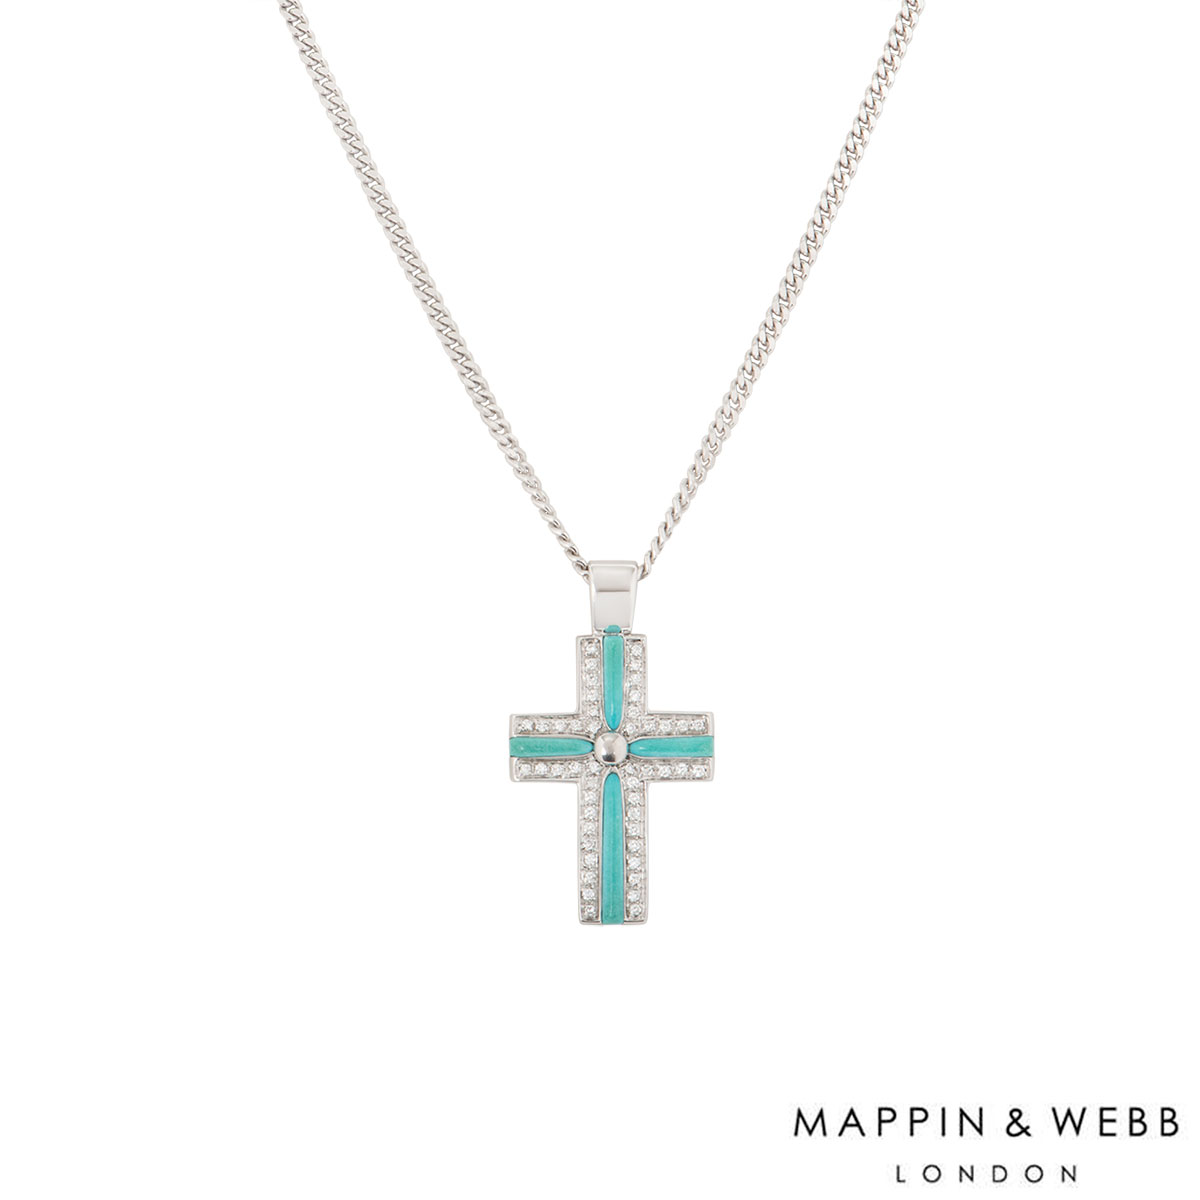 Mappin & Webb White Gold Diamond Cross Necklace